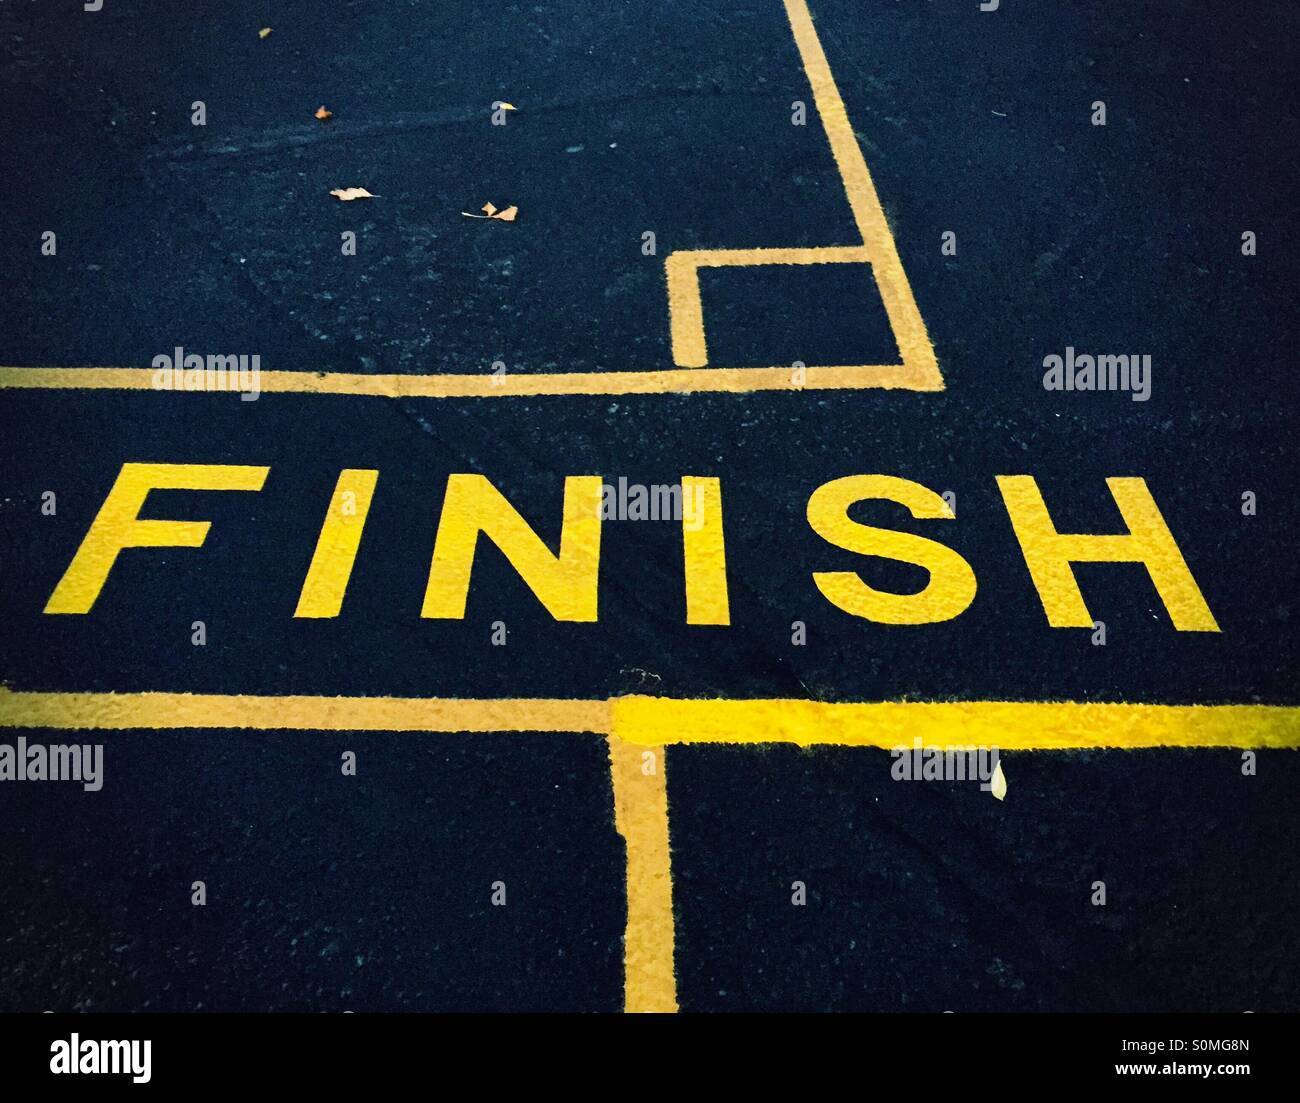 The word 'finish' painted in yellow on dark asphalt. - Stock Image